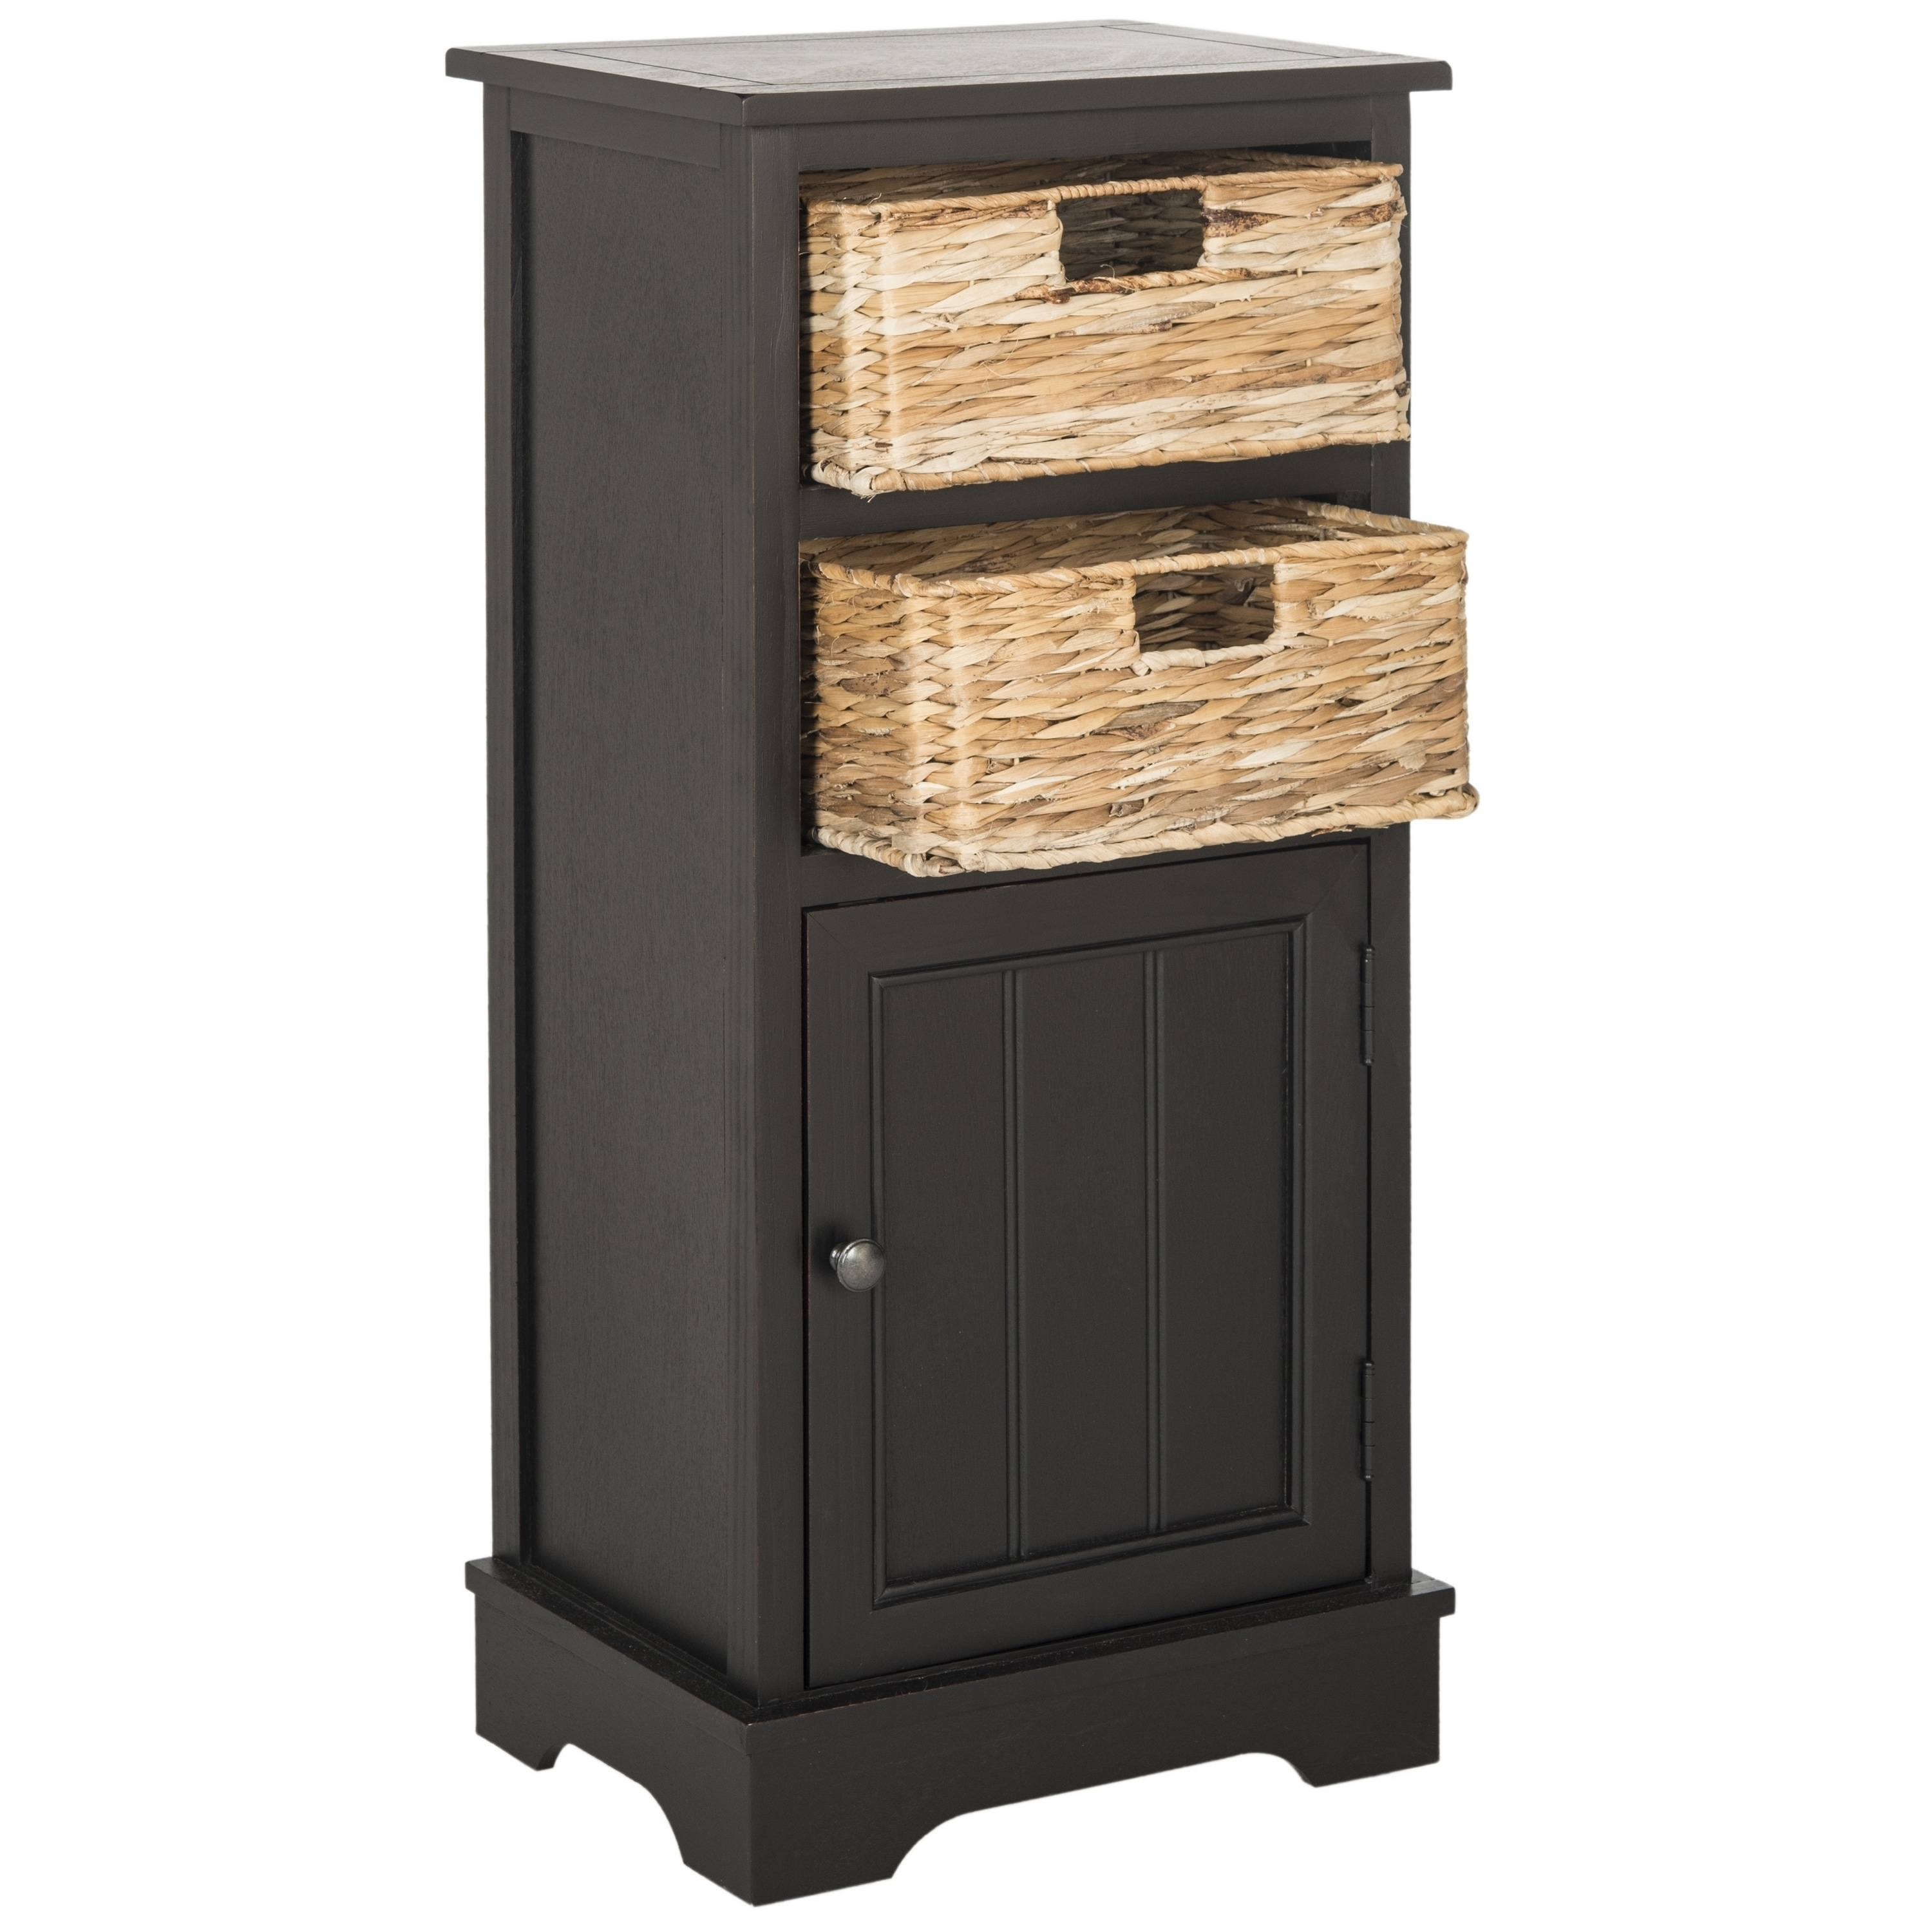 Safavieh Connery Distressed Black Storage Cabinet   Free Shipping Today    Overstock   17896340